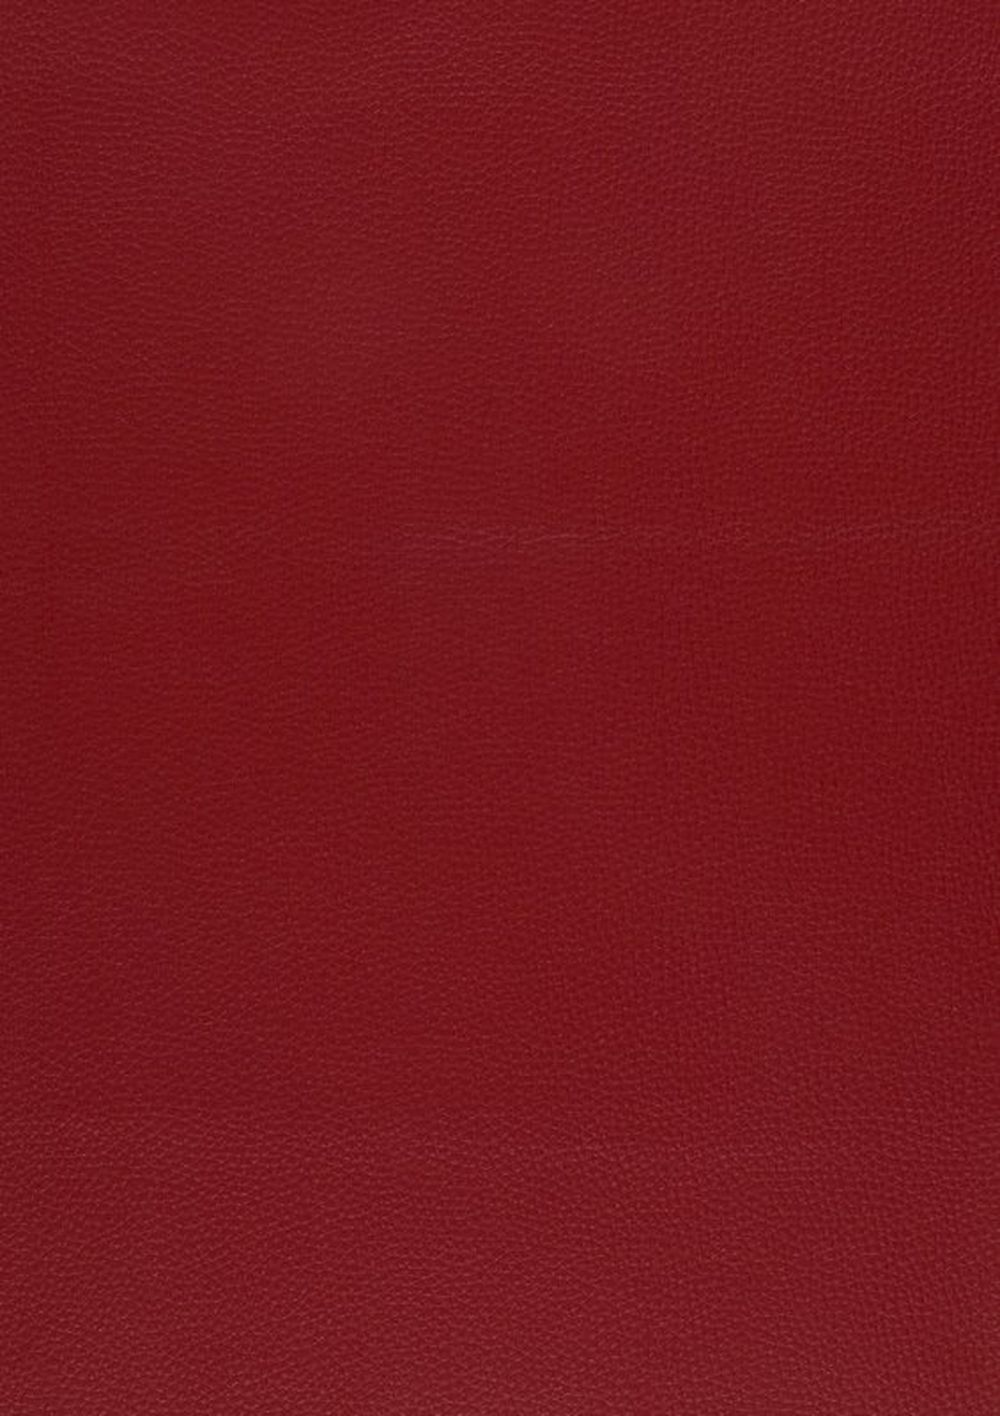 Photo of the fabric Endure FR-One Vino swatch by FR-One. Use for Upholstery Medium Duty, Accessory. Style of Plain, Texture